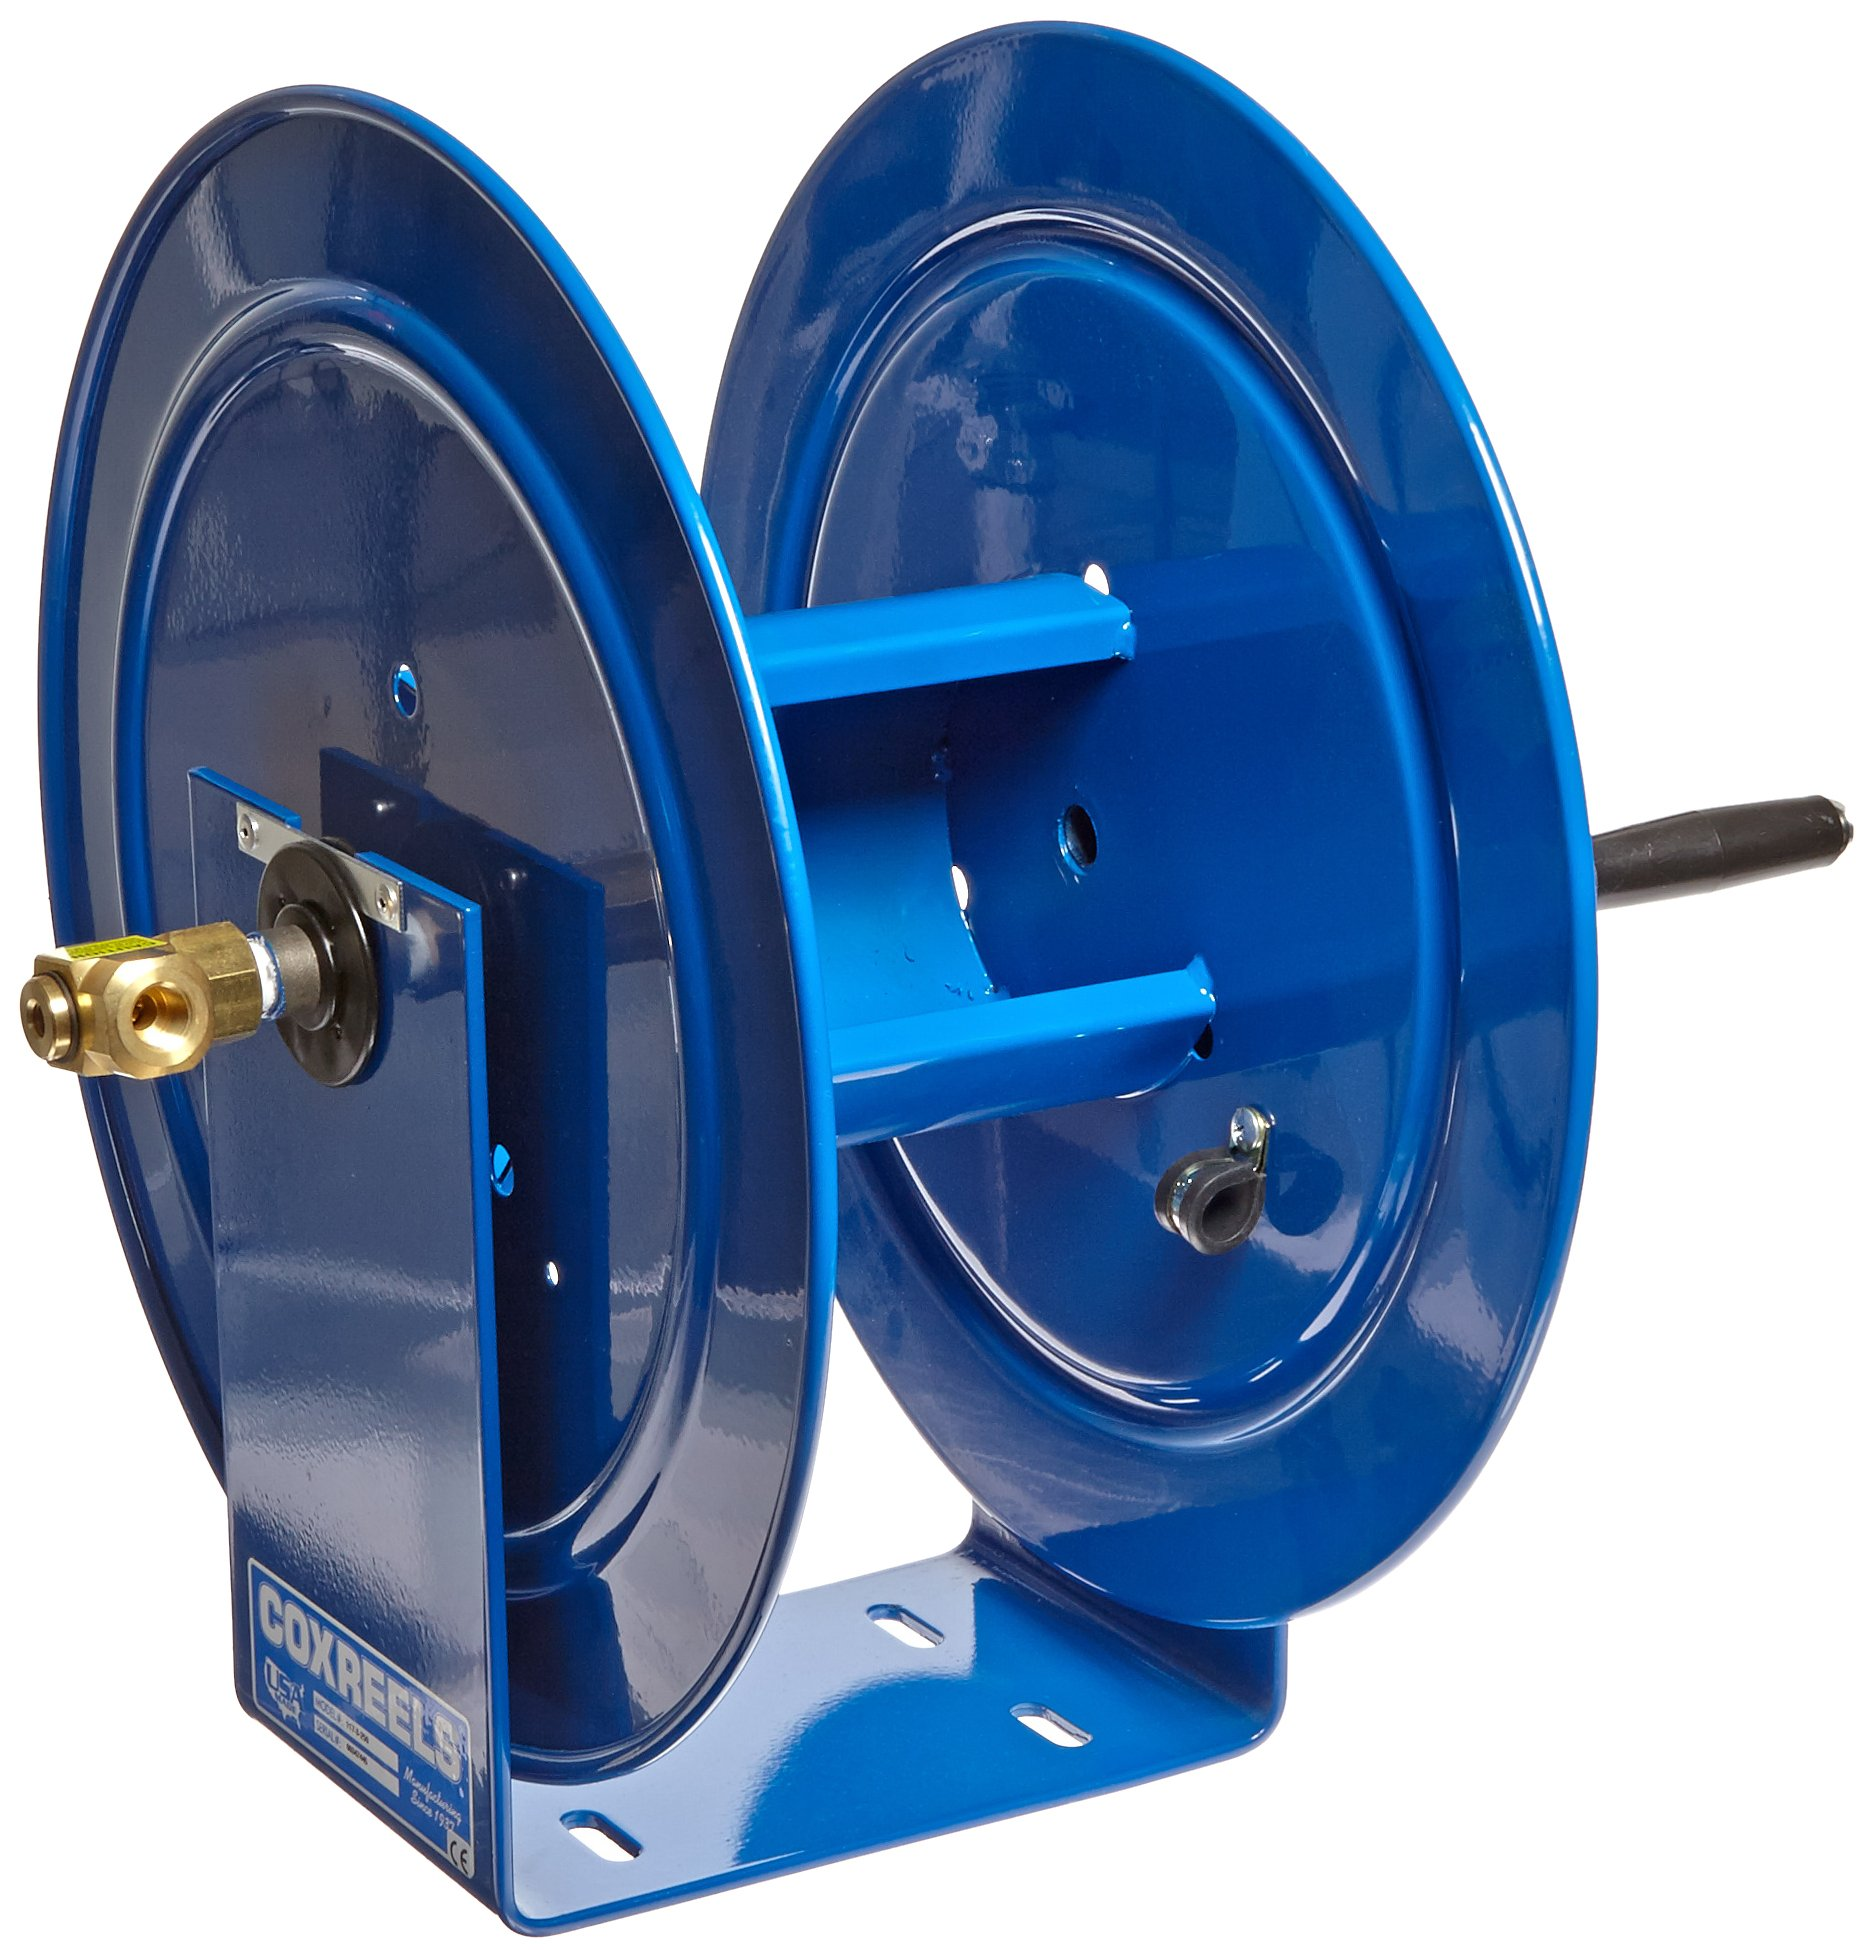 Coxreels 117-3-250 Compact Hand Crank Hose Reel, 4,000 PSI, Holds 3/8'' x 250' Length Hose, Hose Not Included by Coxreels (Image #2)